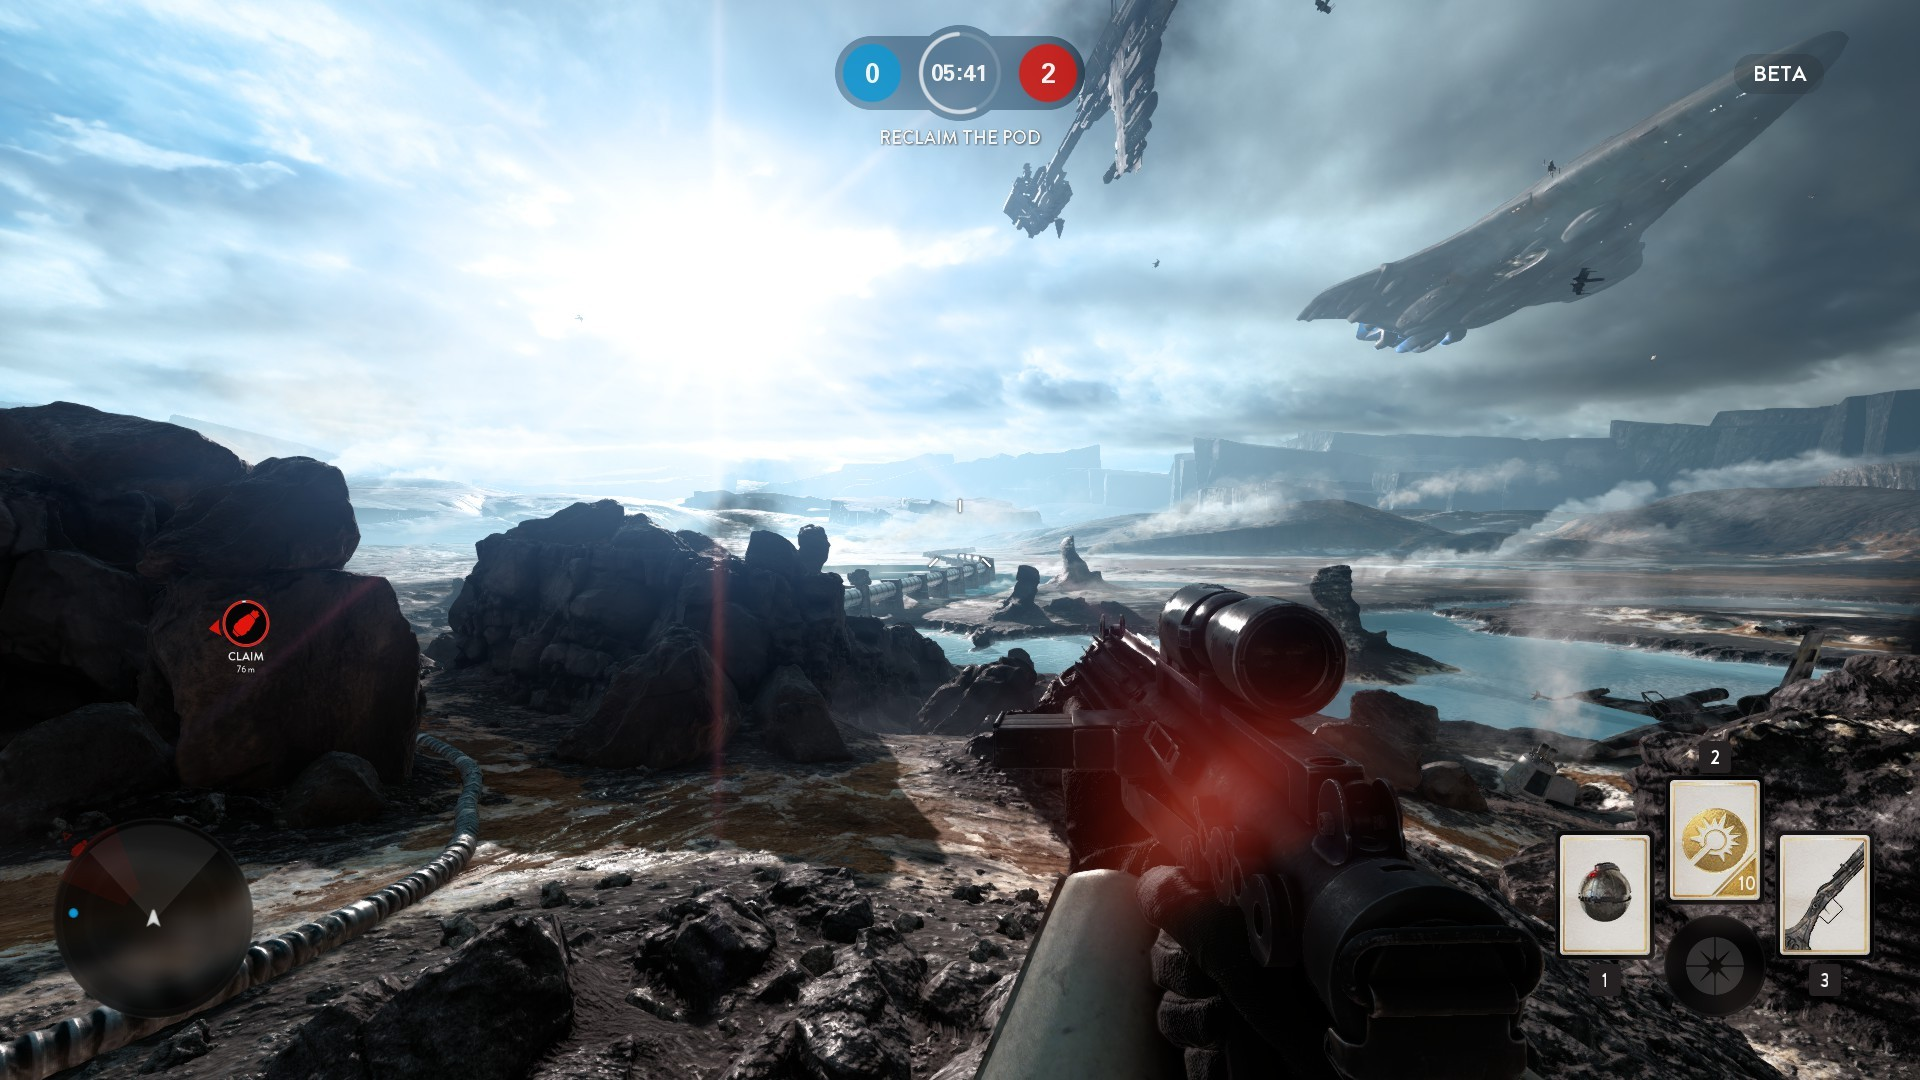 I learned to hate this map quick.  Photo: http://www.pcworld.com/article/2990073/software-games/star-wars-battlefront-beta-impressions-better-than-the-prequel-films.html